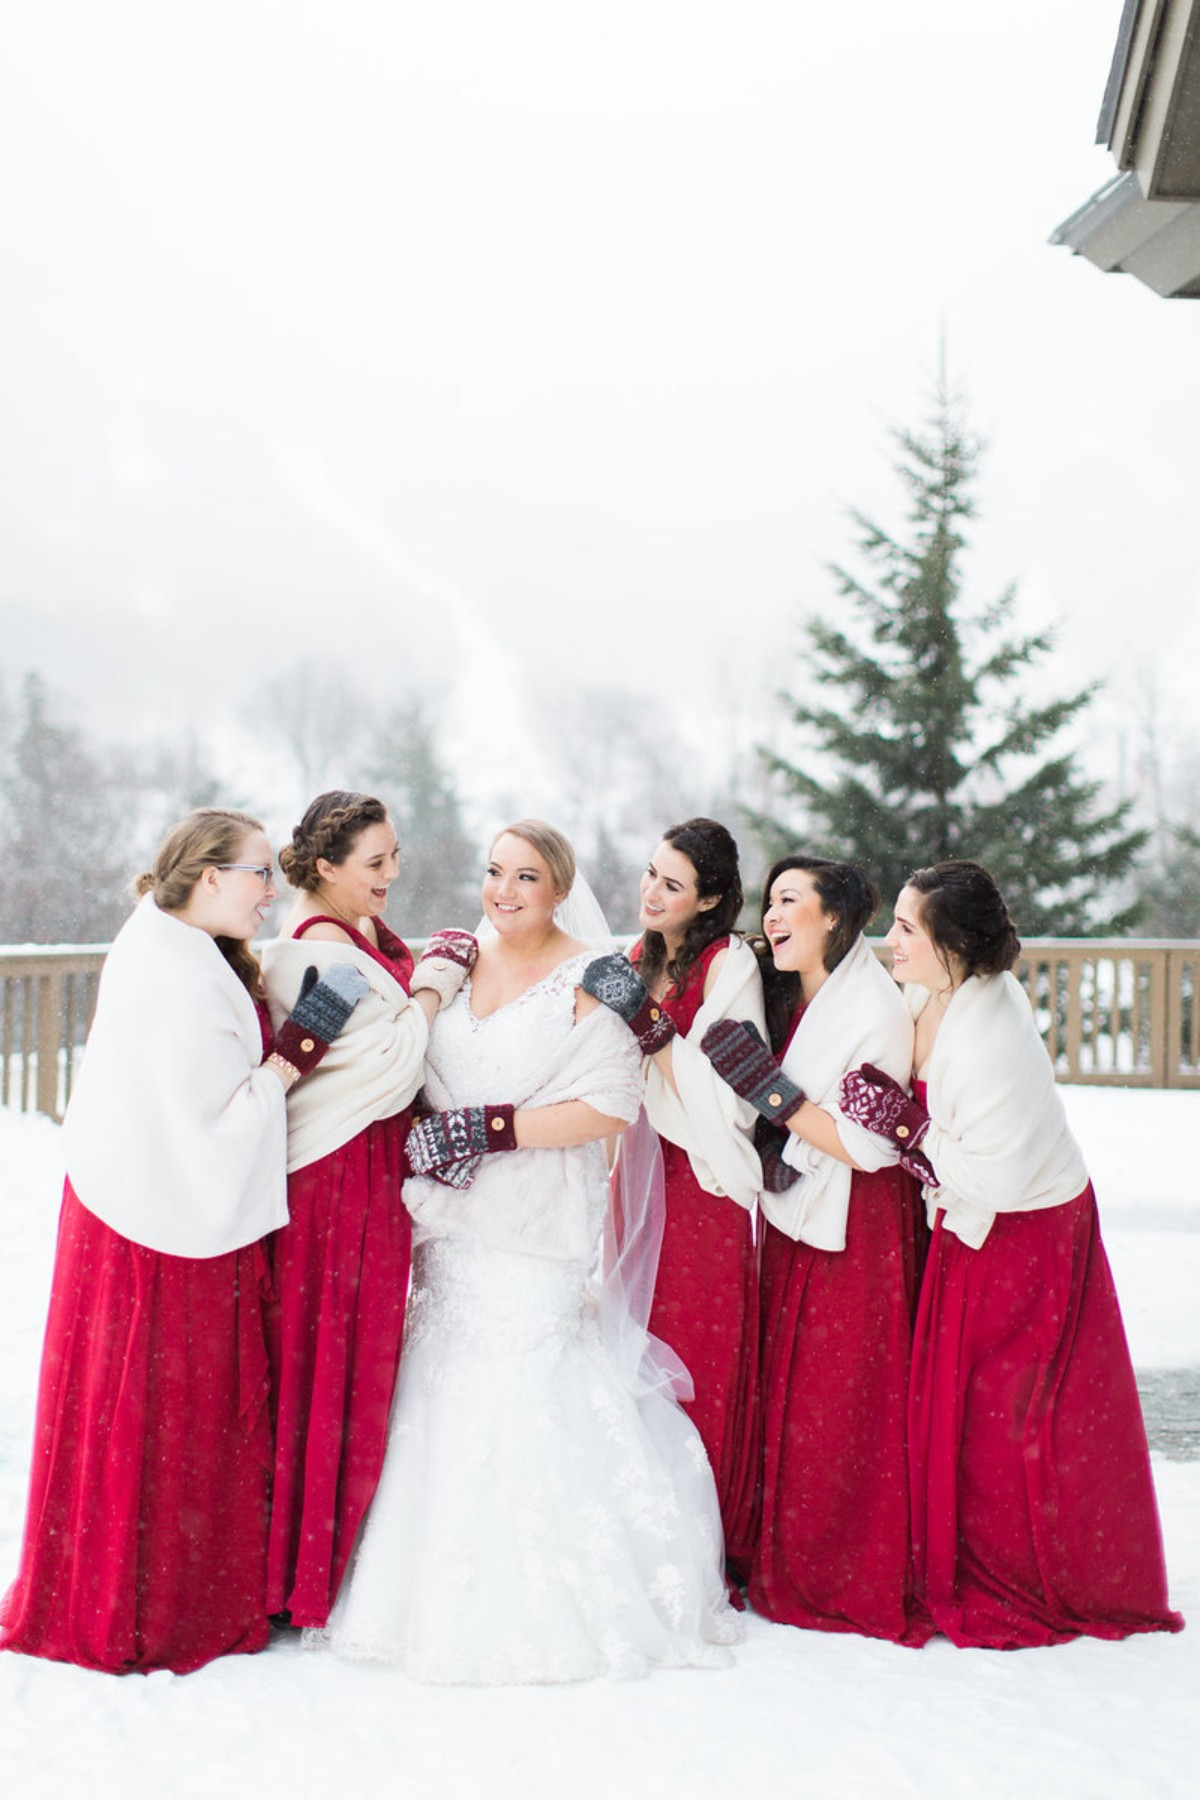 Winter bridesmaid look with mittens